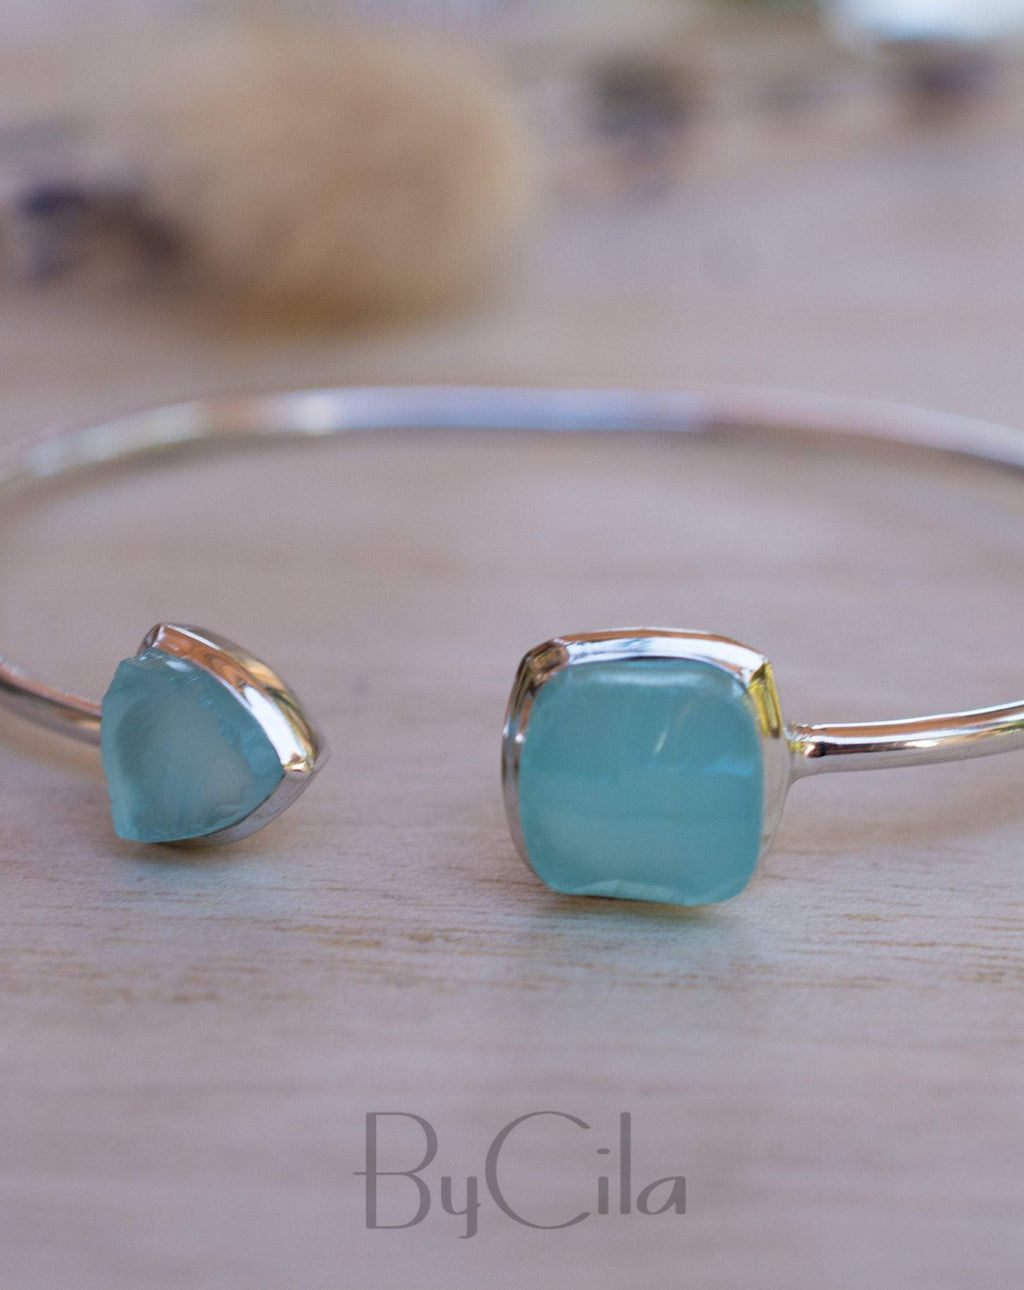 Rough Aqua Chalcedony Bangle Bracelet * Gold Plated 18k or Silver Plated* Gemstone * Adjustable * Statement * Stacking * Raw * BJB008A